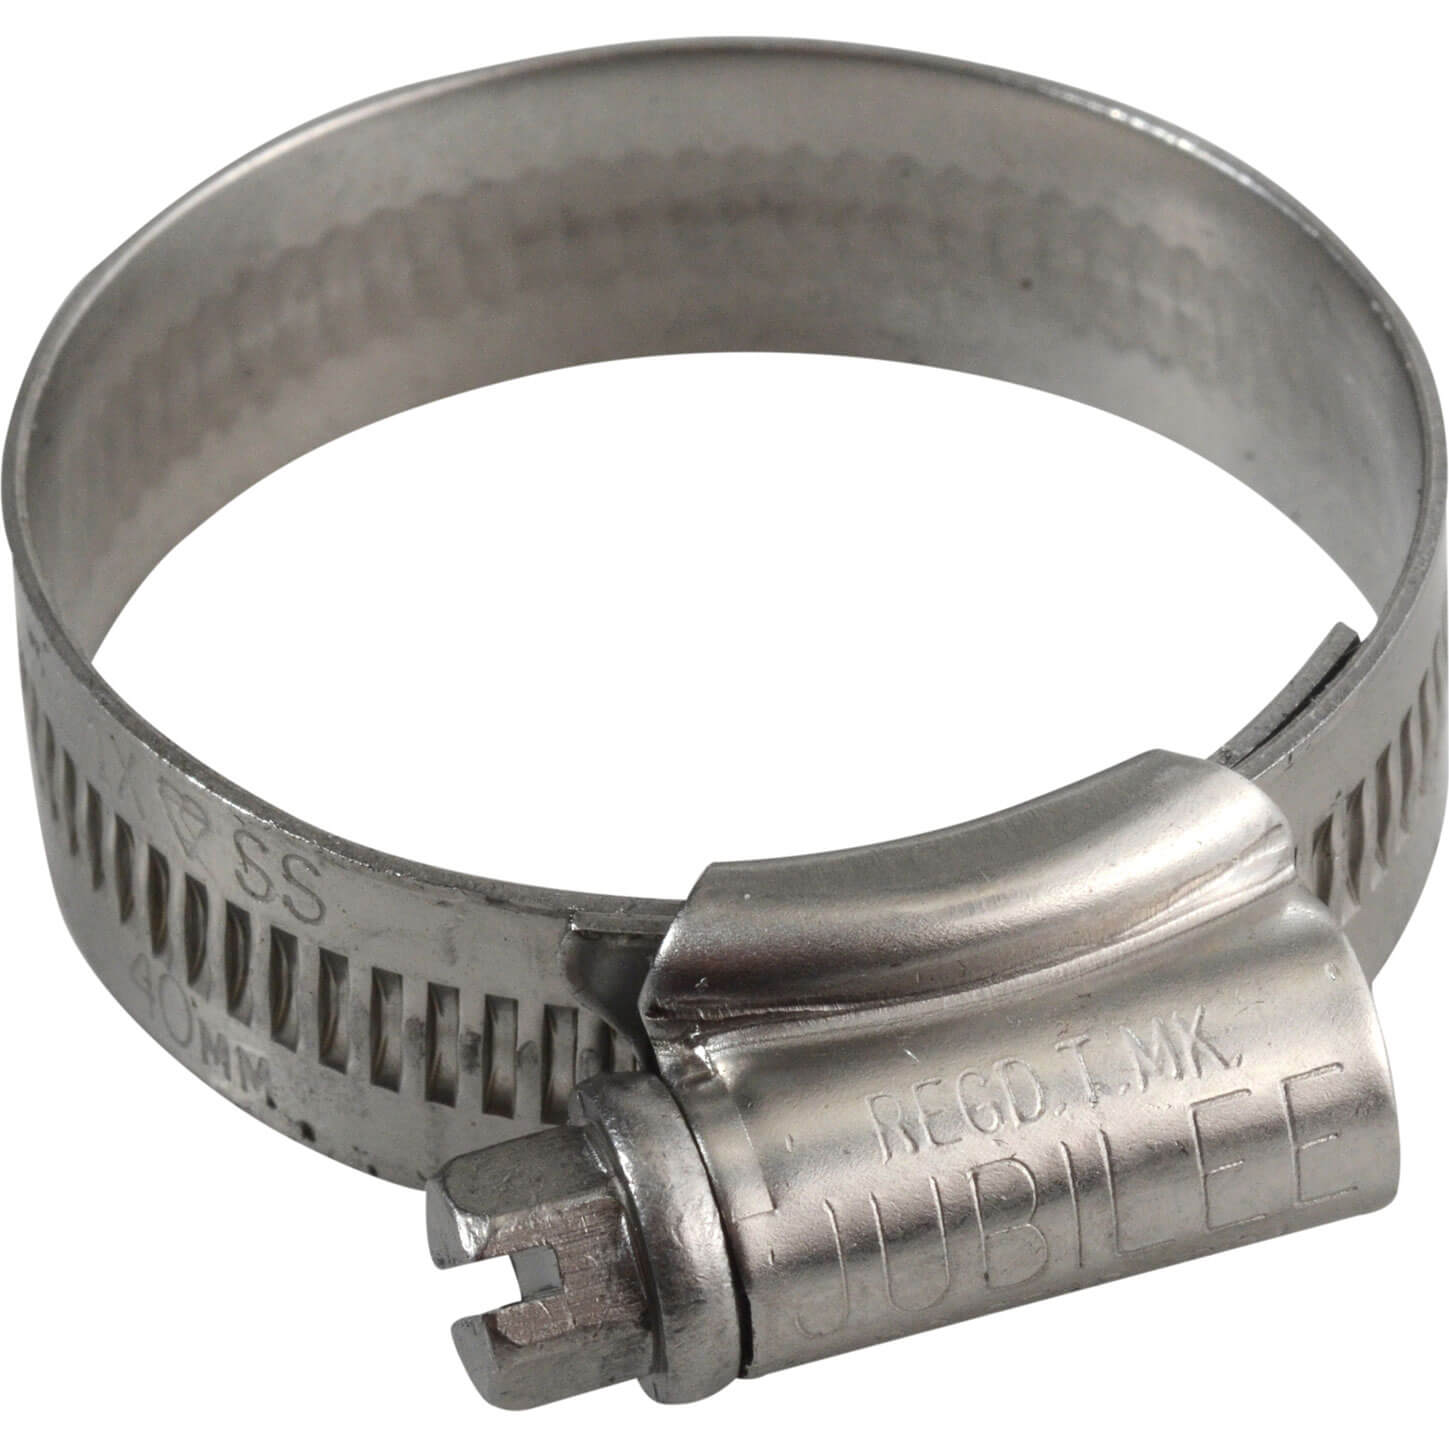 Image of Jubilee Stainless Steel Hose Clip 30mm - 40mm Pack of 1